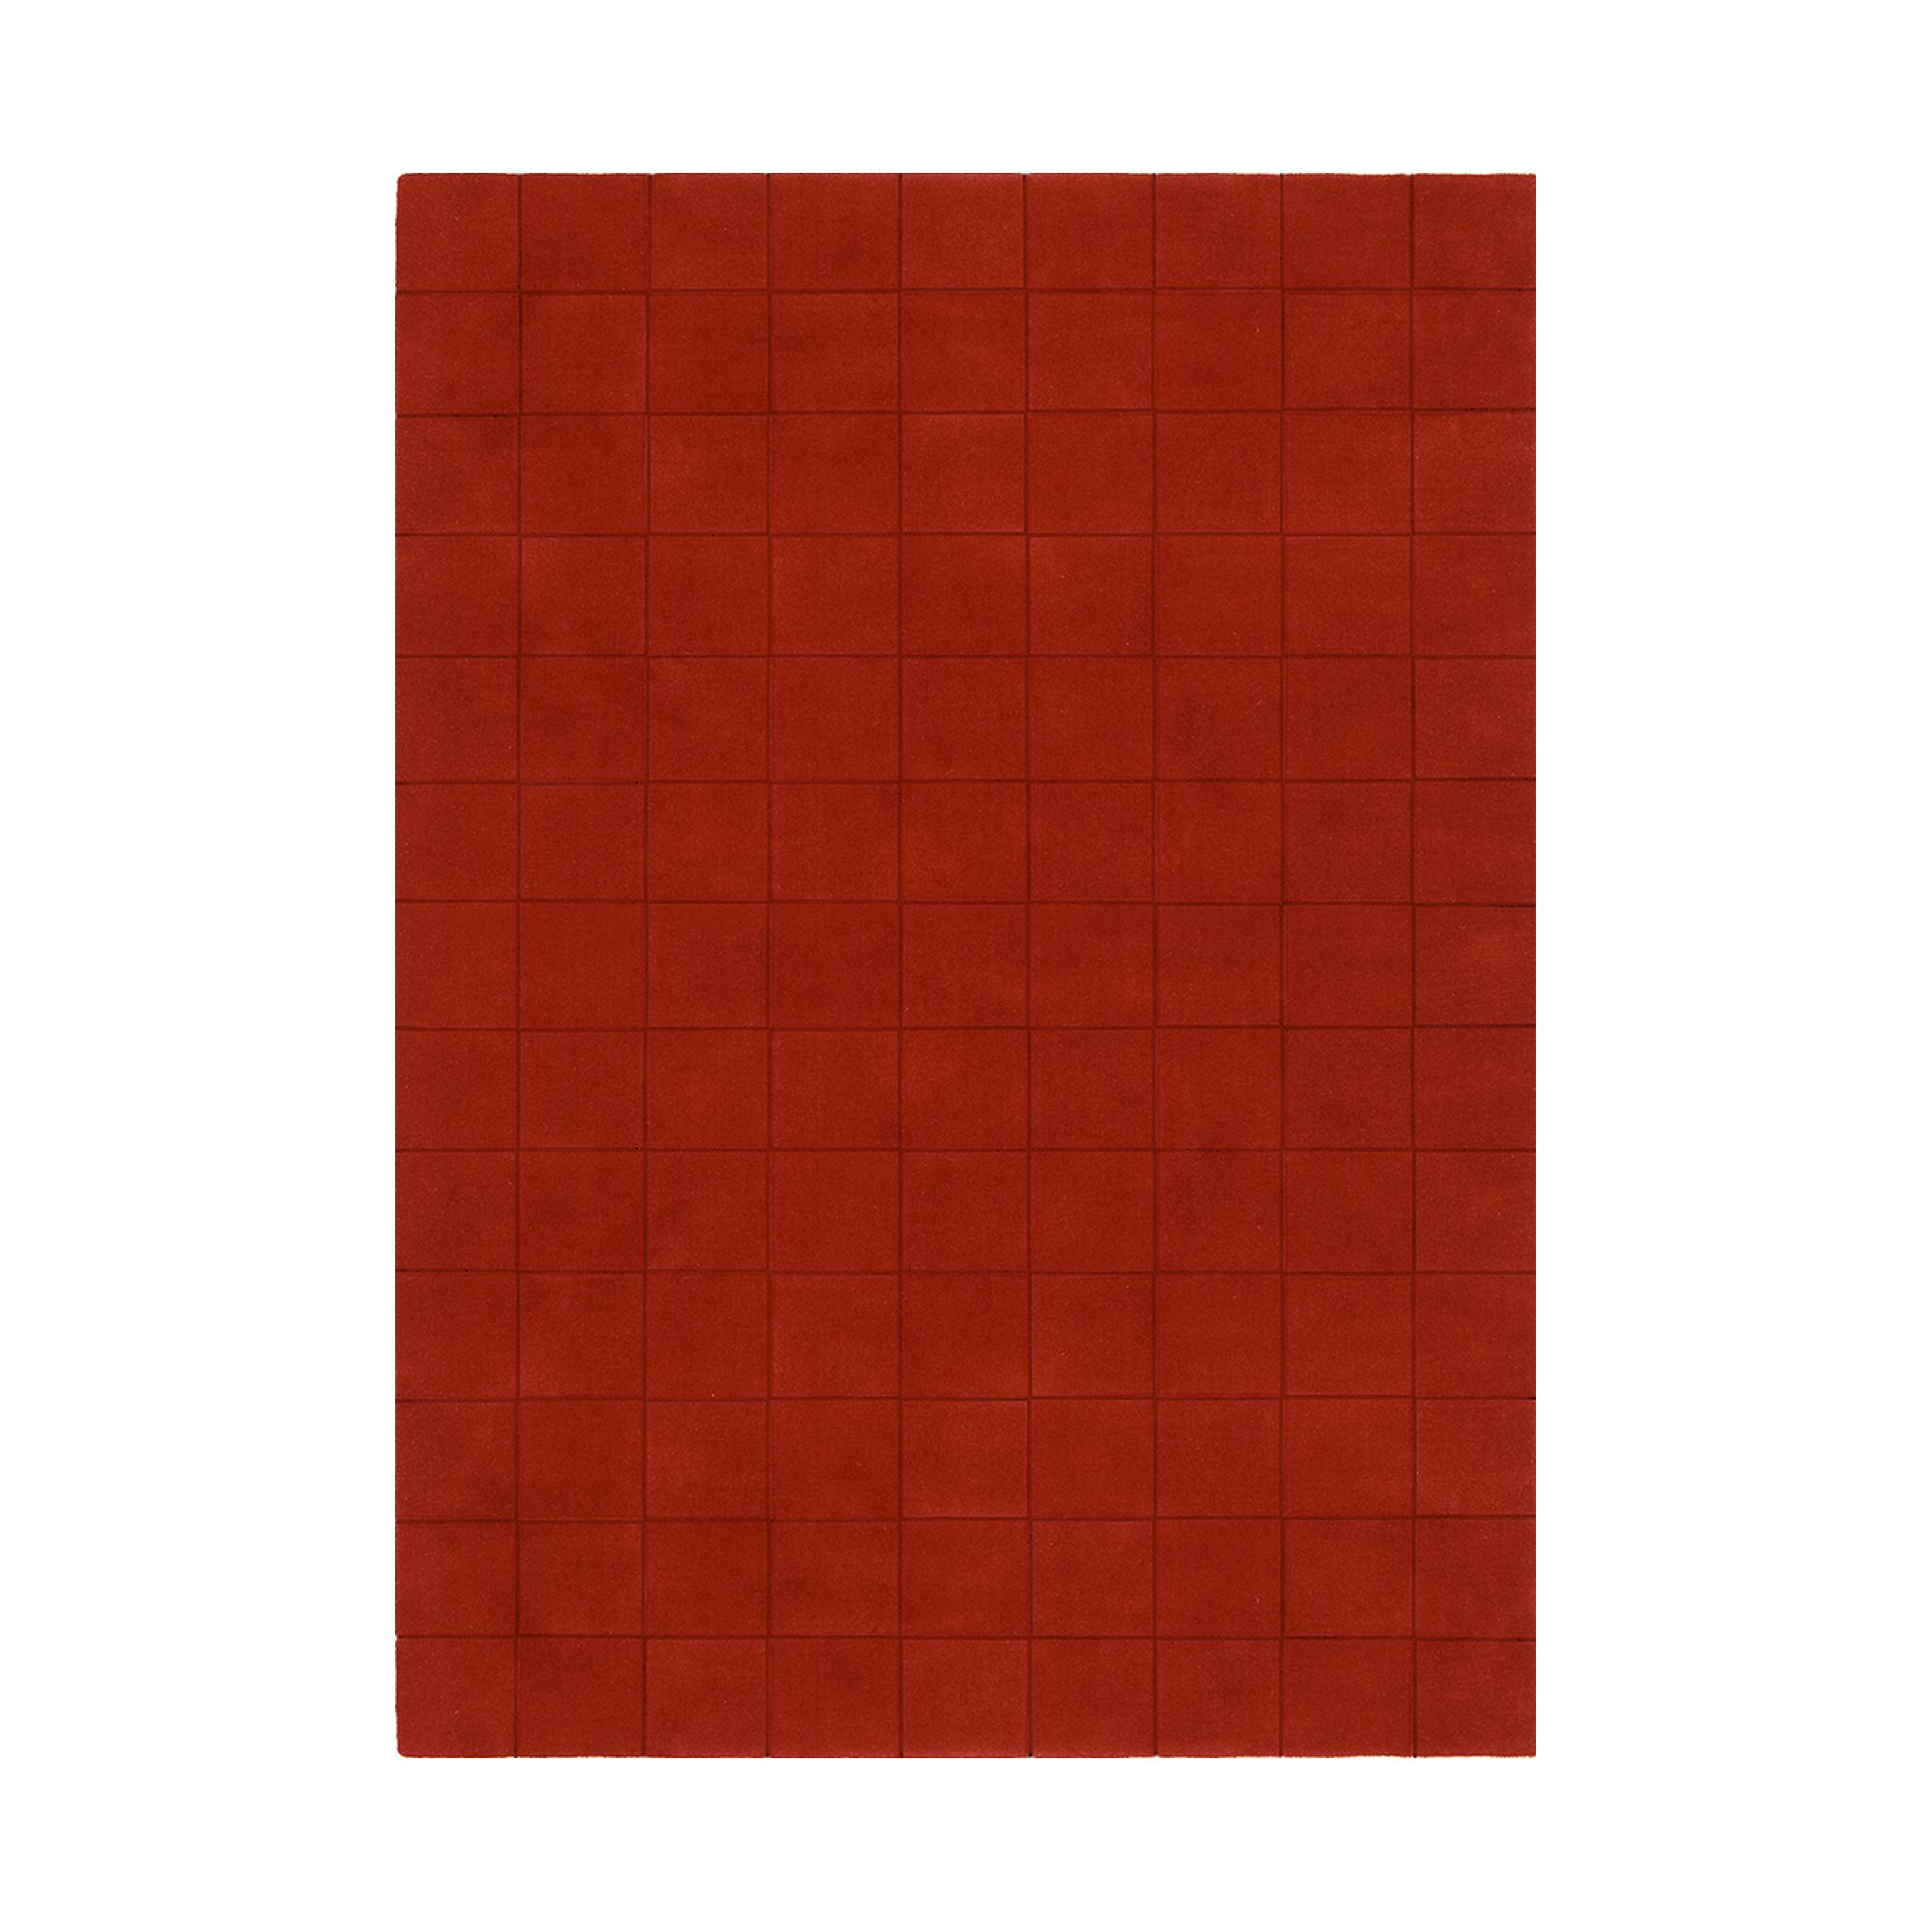 Linie Design Luzern Red Rug - 240cm x 170cm at Tesco Direct